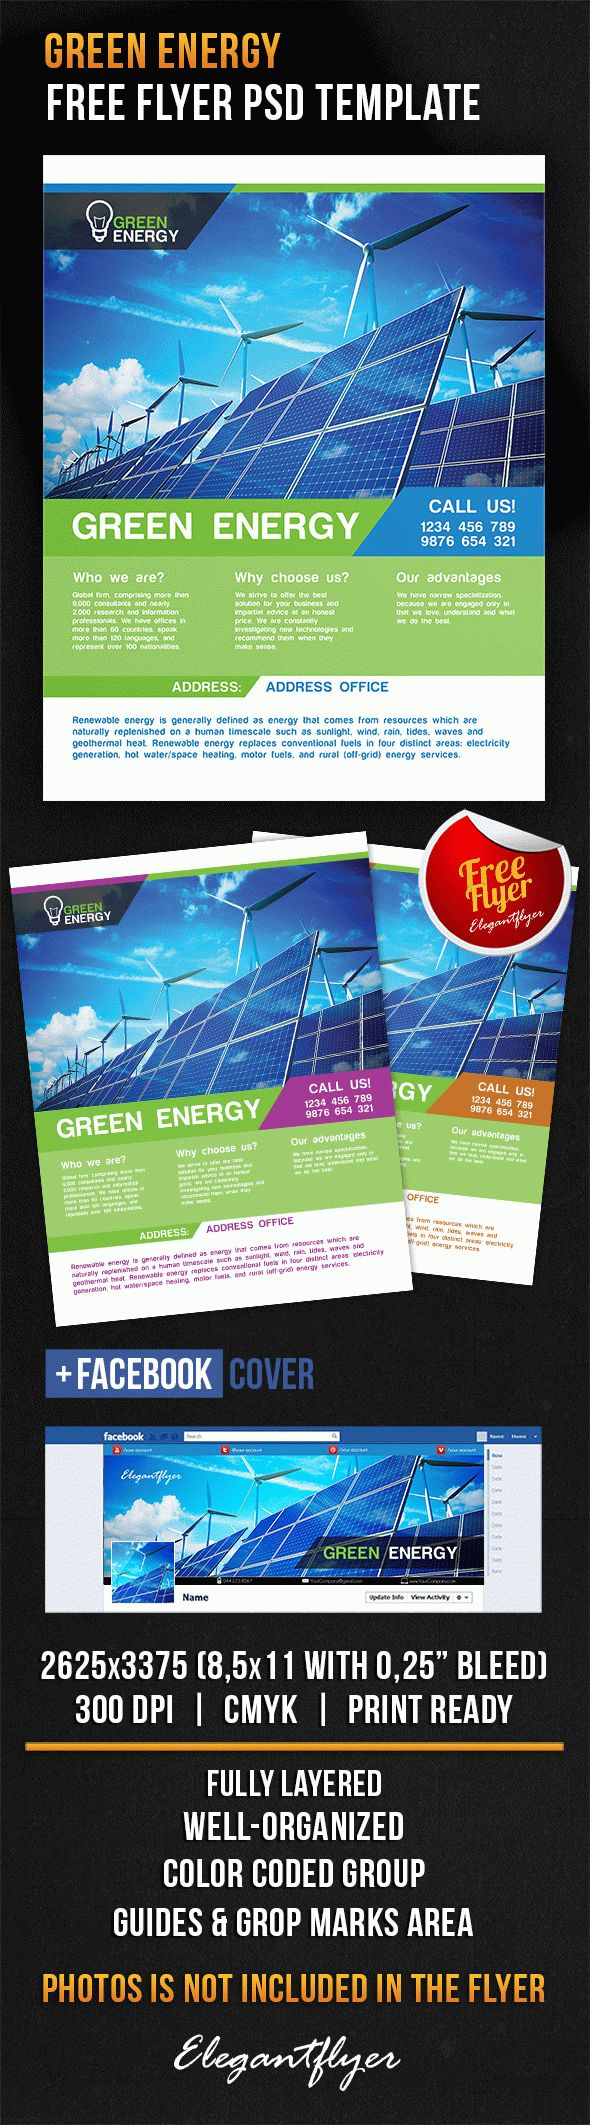 Green Energy – Free Flyer PSD Template